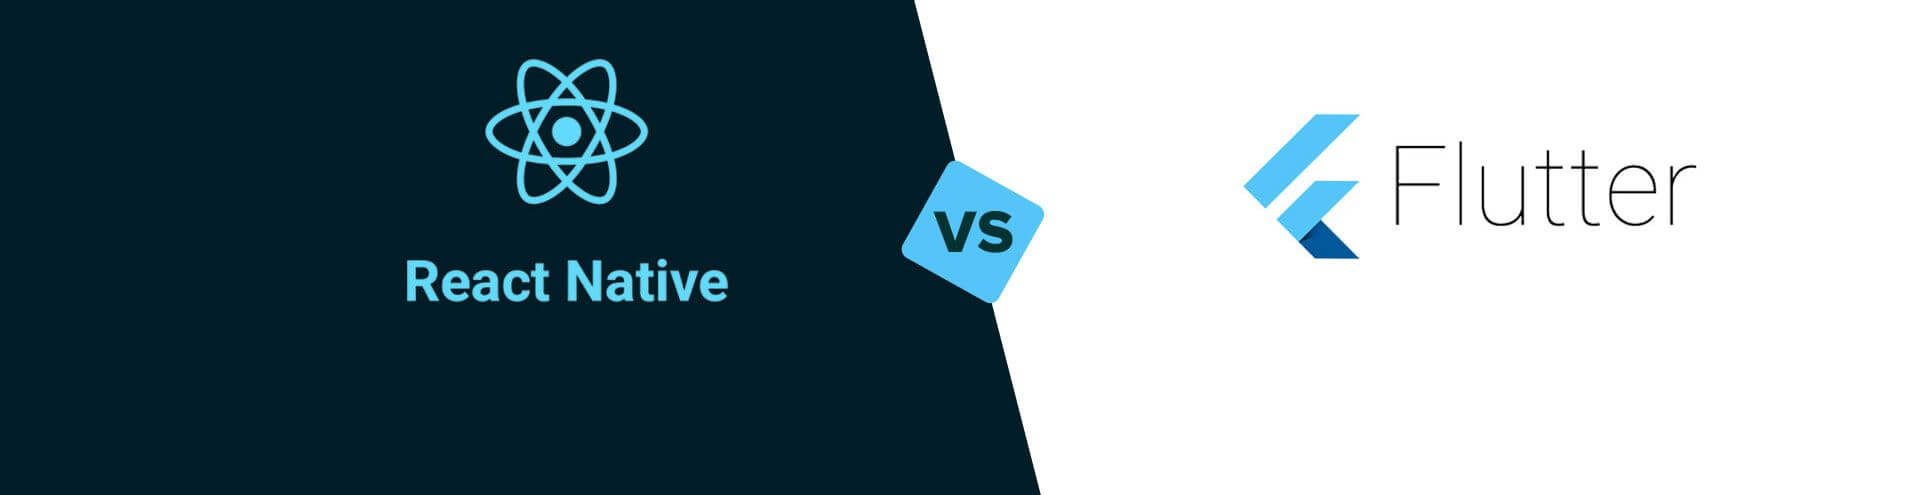 React Native vs Flutter: What Is Better For Your Project